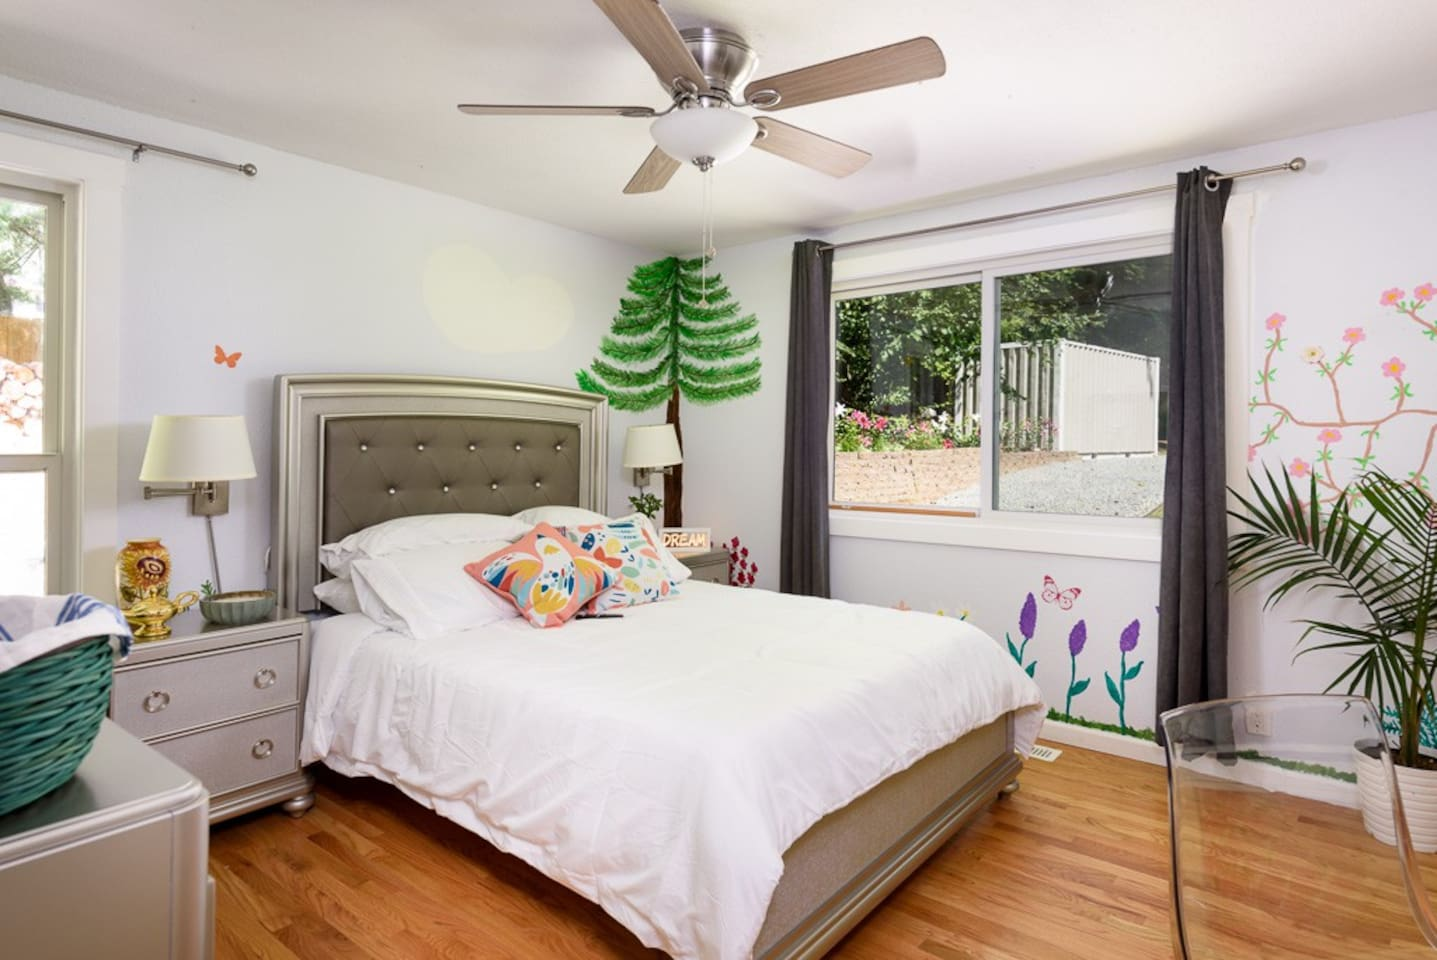 Princess Room has been hand-painted by family artists and reflects the Pacific Northwest. All rooms feature Voice Bot Technology, turn on music, make a call, change the light's color, set alarms, also FREE DYI smoothies, breakfast & coffee/Tea Bar